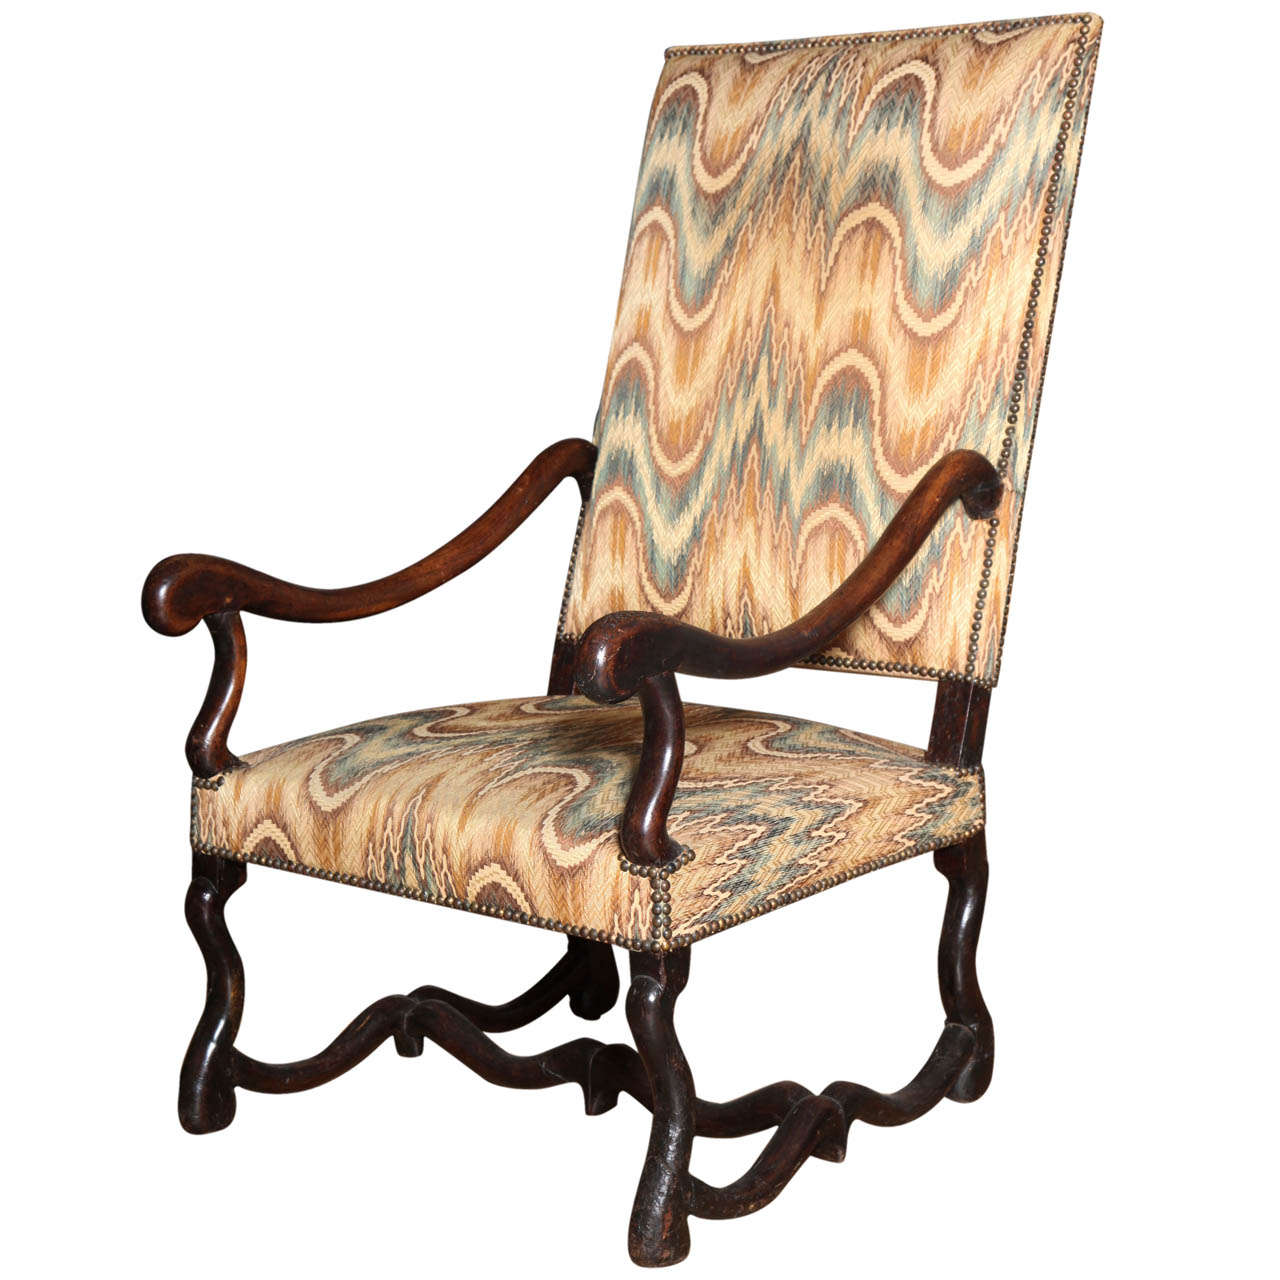 a louis xiv style walnut fauteuil a la reine at 1stdibs. Black Bedroom Furniture Sets. Home Design Ideas